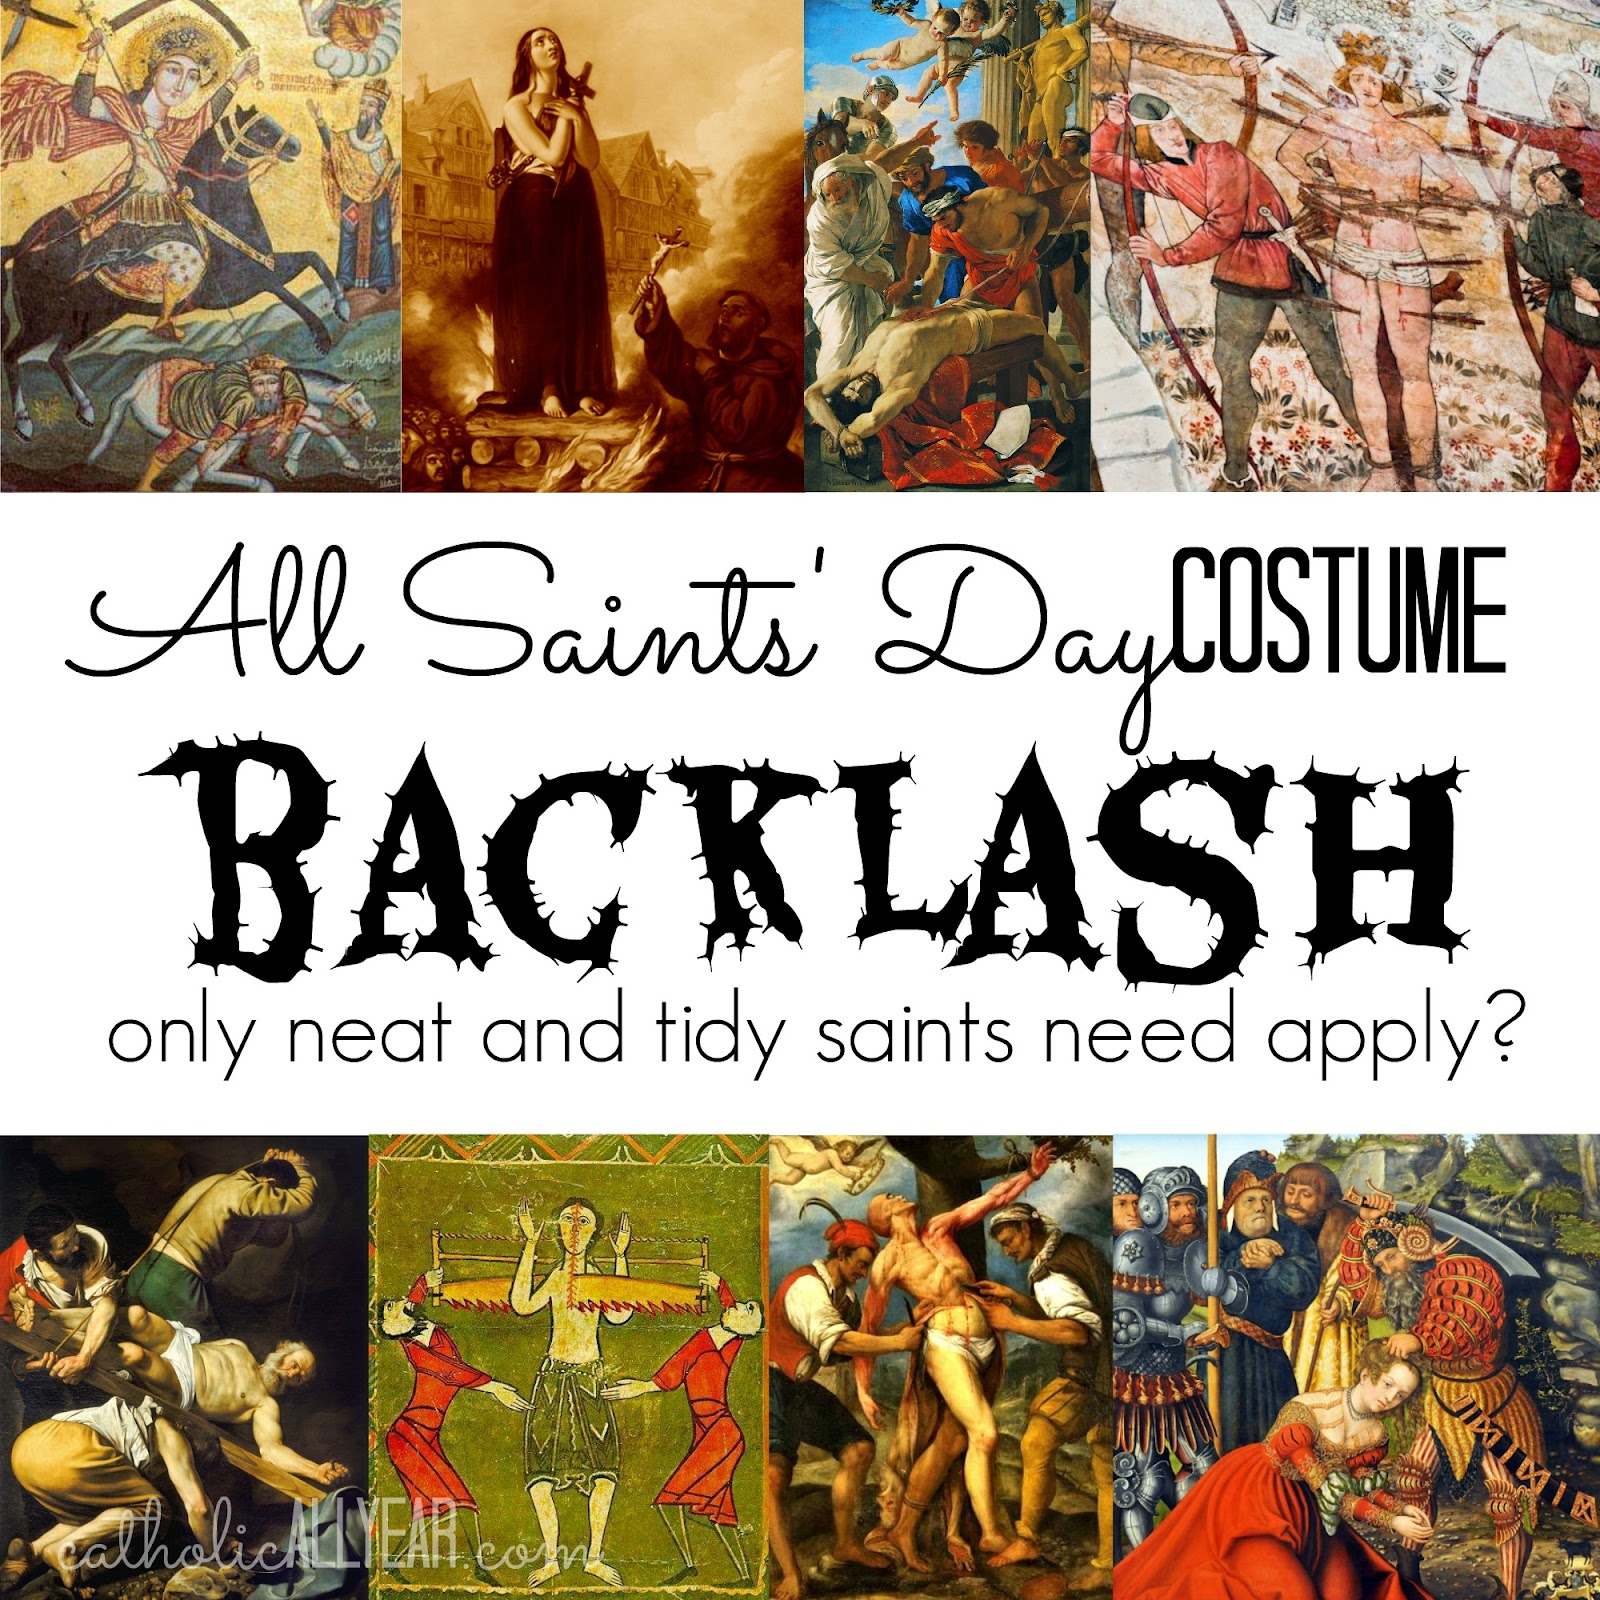 Catholic All Year All Saints Day Costume Backlash Only